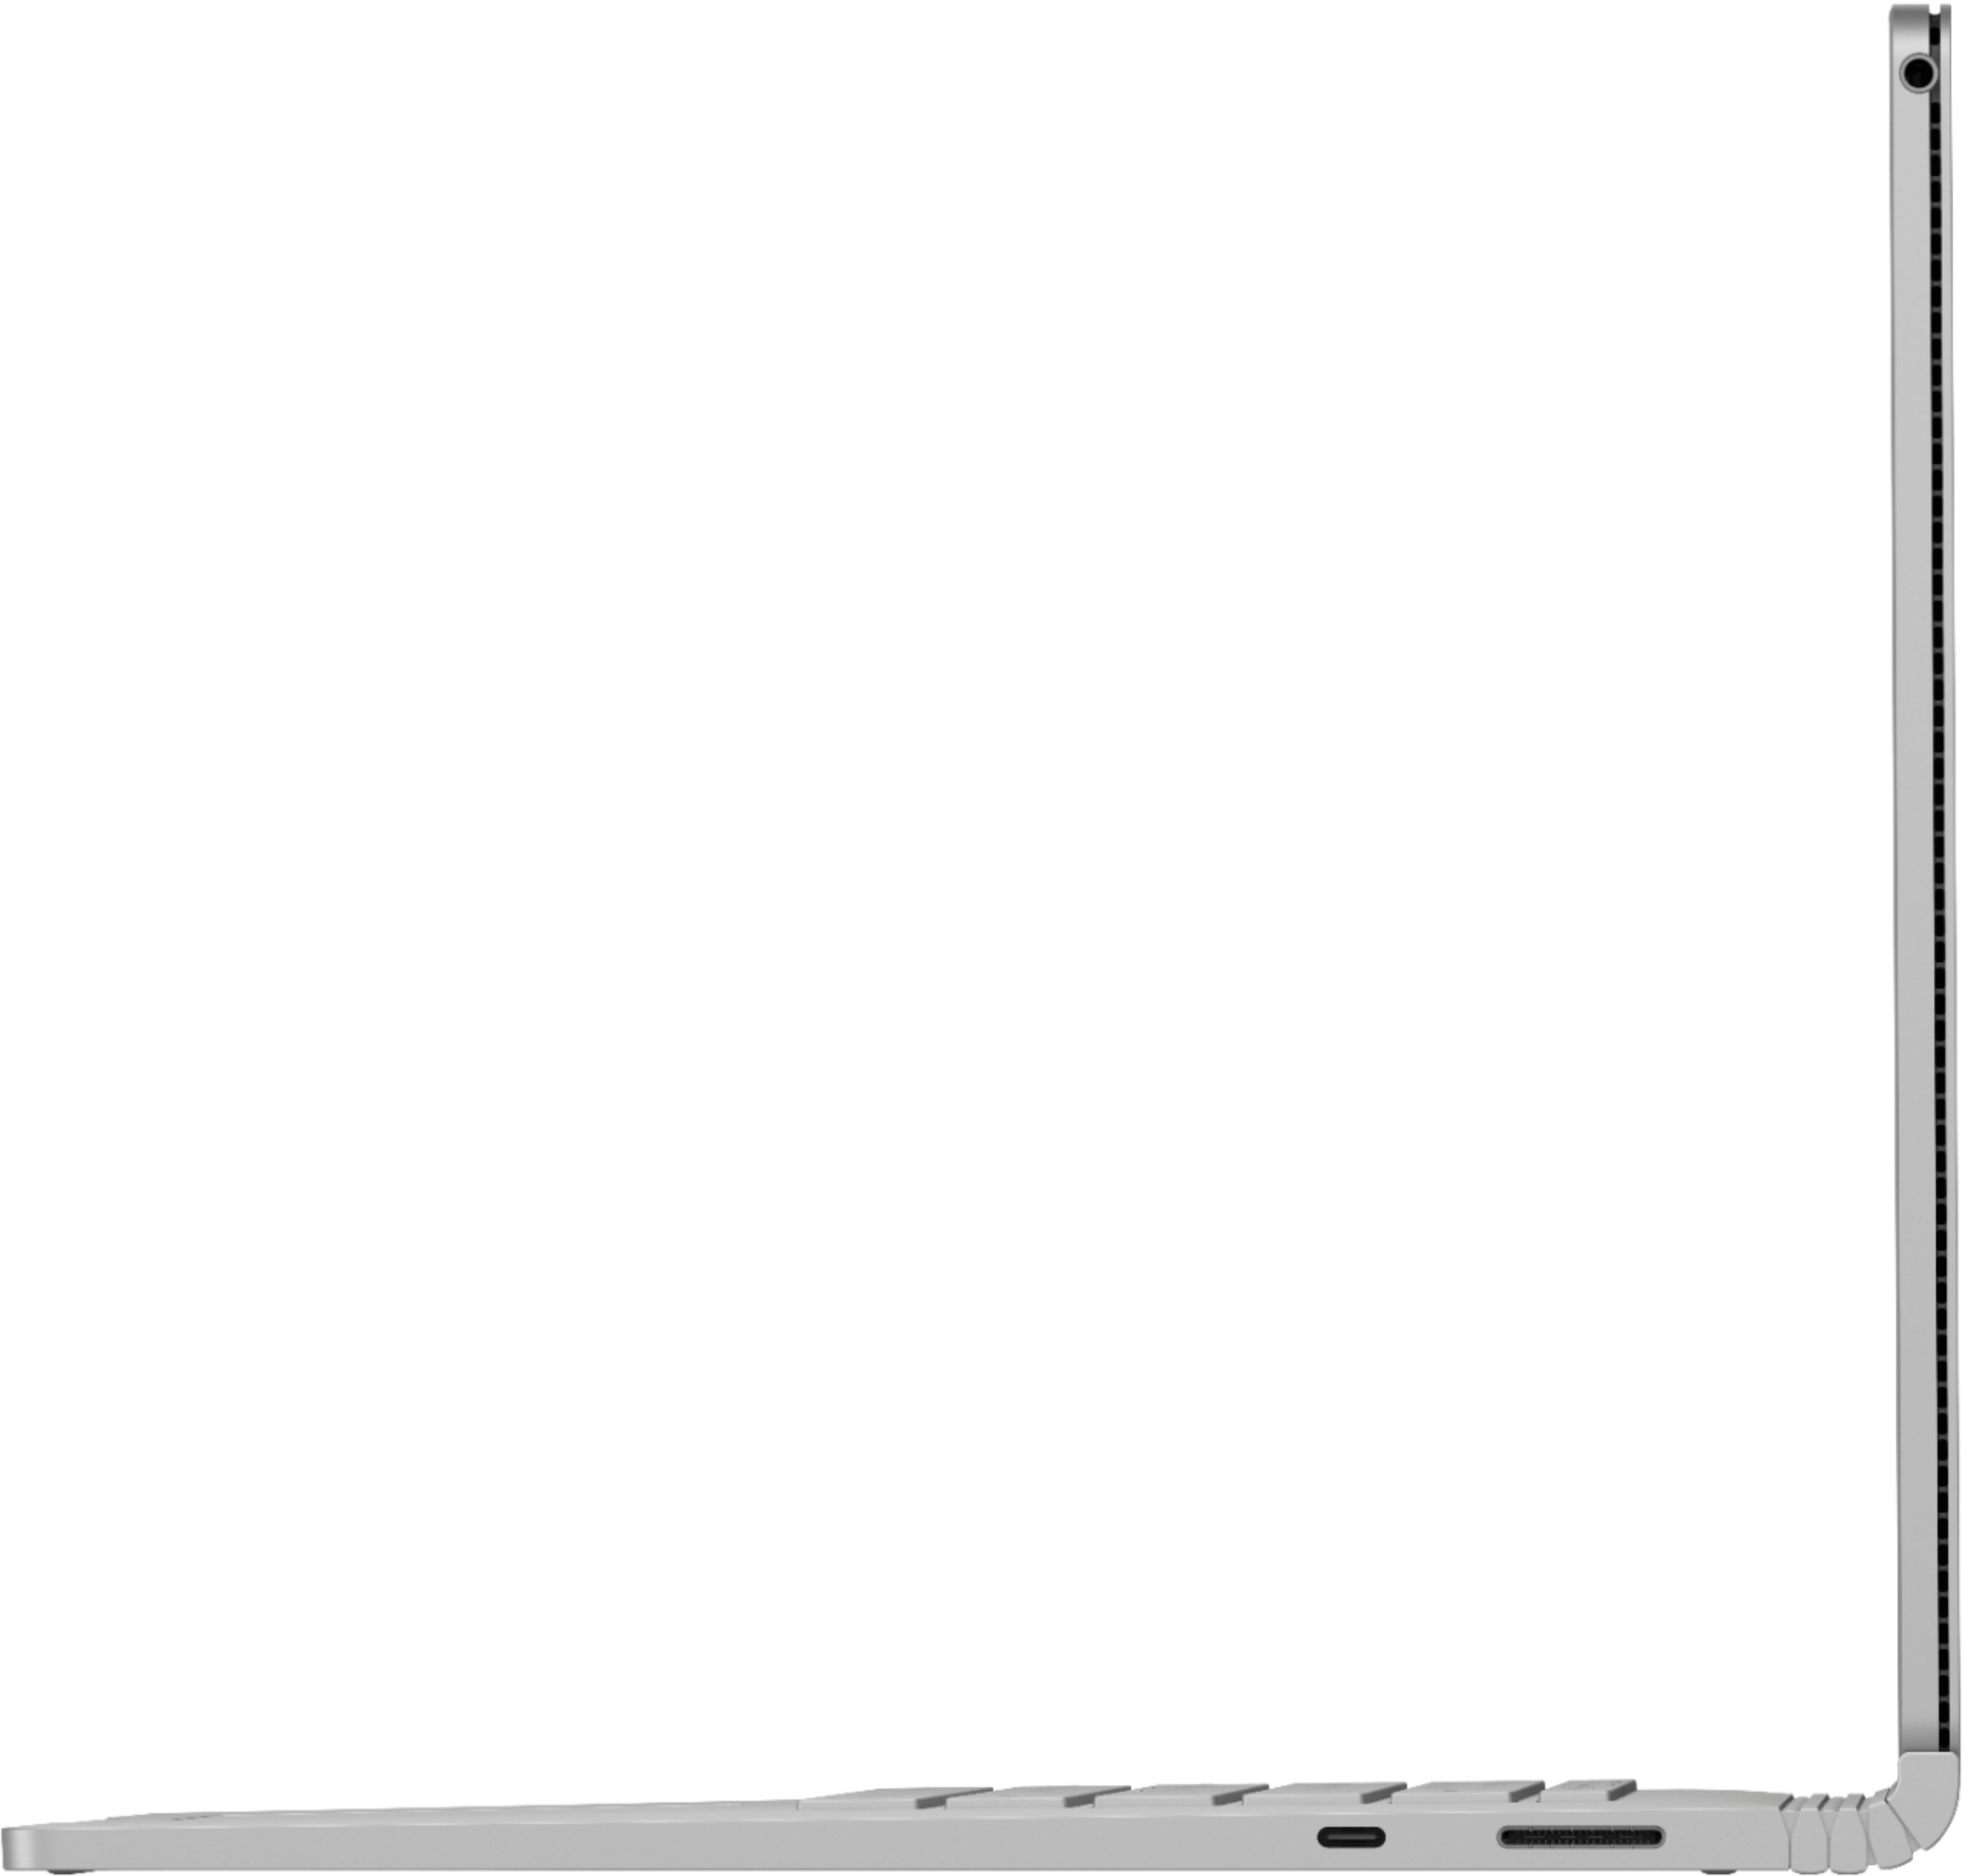 """Alt View Zoom 13. Microsoft - Surface Book 3 13.5"""" Touch-Screen PixelSense™ - 2-in-1 Laptop - Intel Core i7 - 32GB Memory - 1TB SSD - Platinum."""